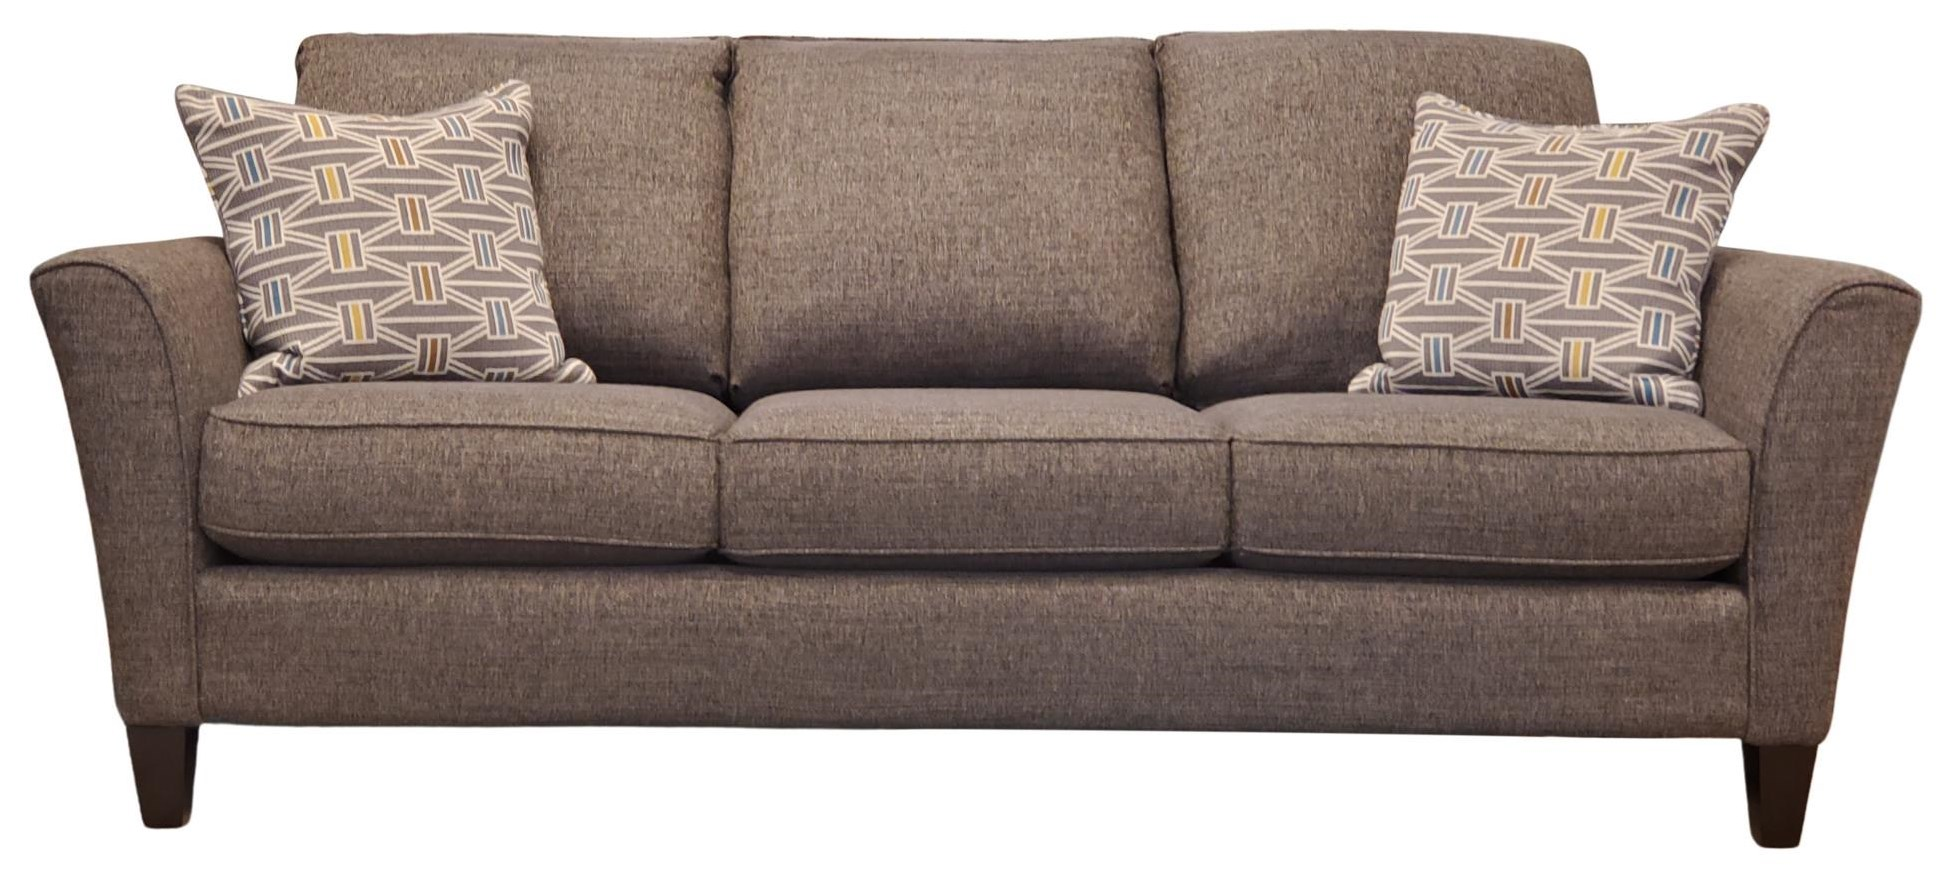 2342 Series Sofa by Decor-Rest at Upper Room Home Furnishings